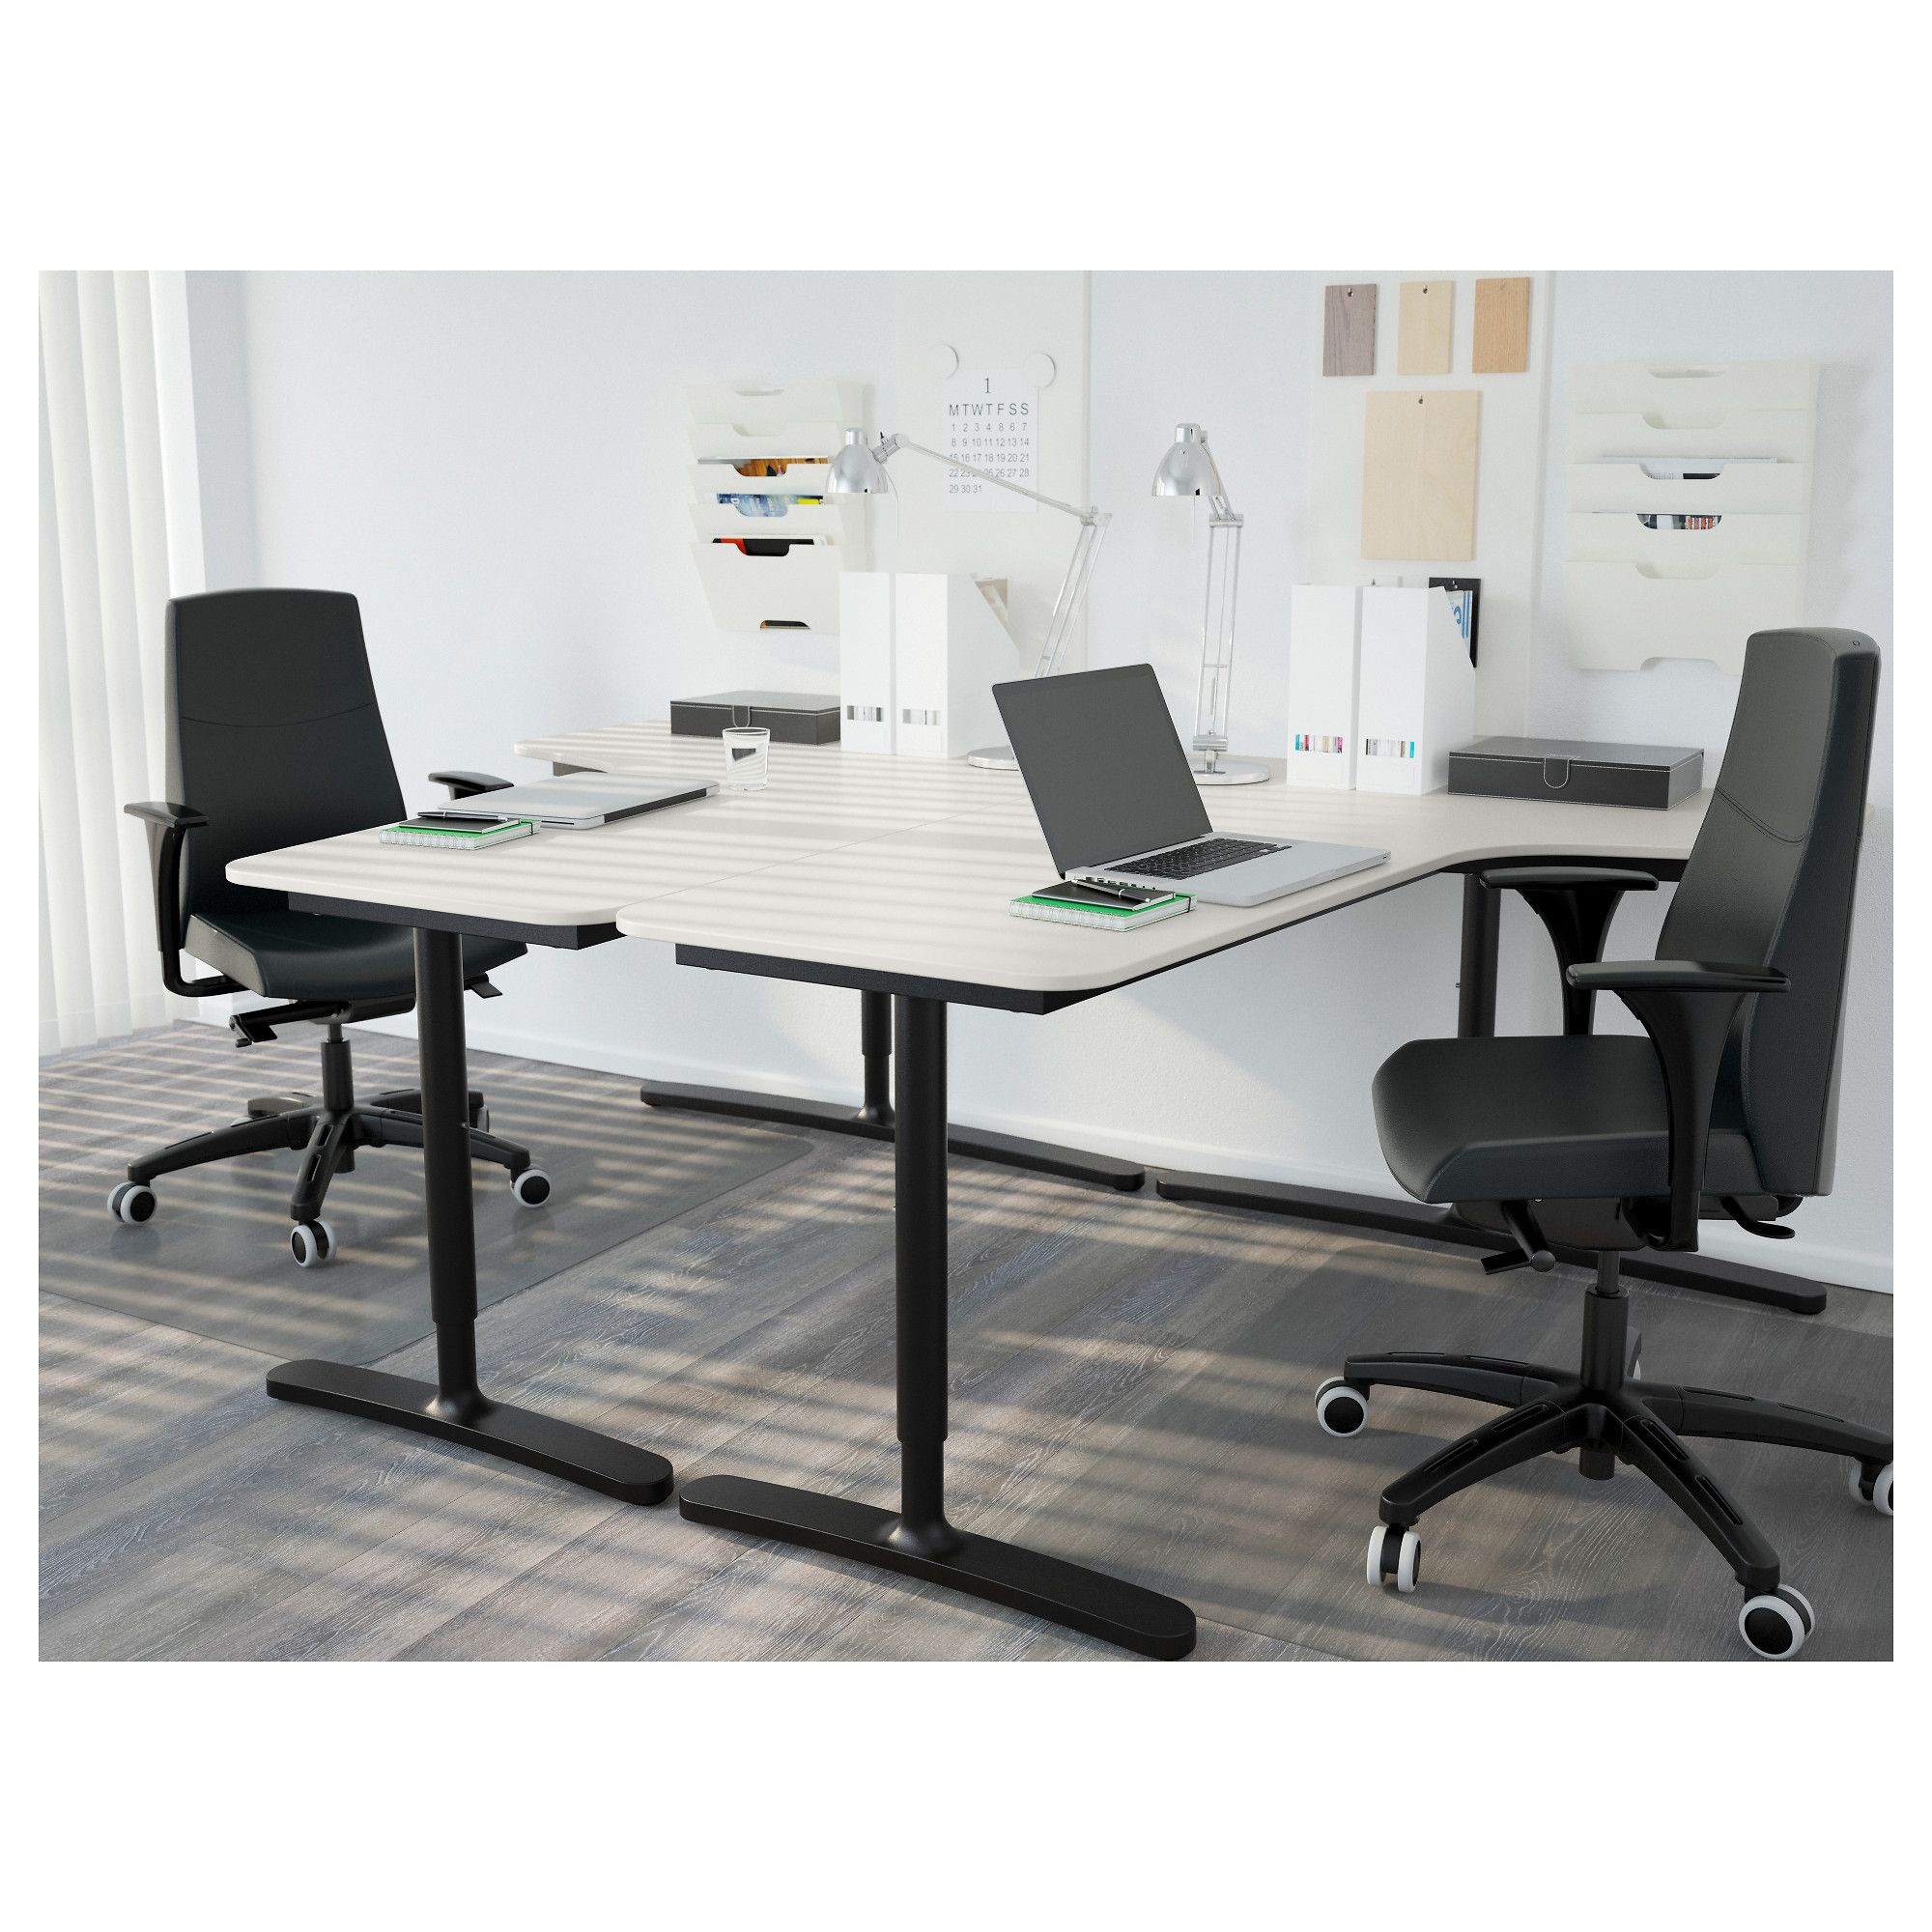 Bekant Right Hand Corner Table Top White 63x43 1 4 160x110 Cm Front Office Furniture Ikea Office Furniture Home Office Design